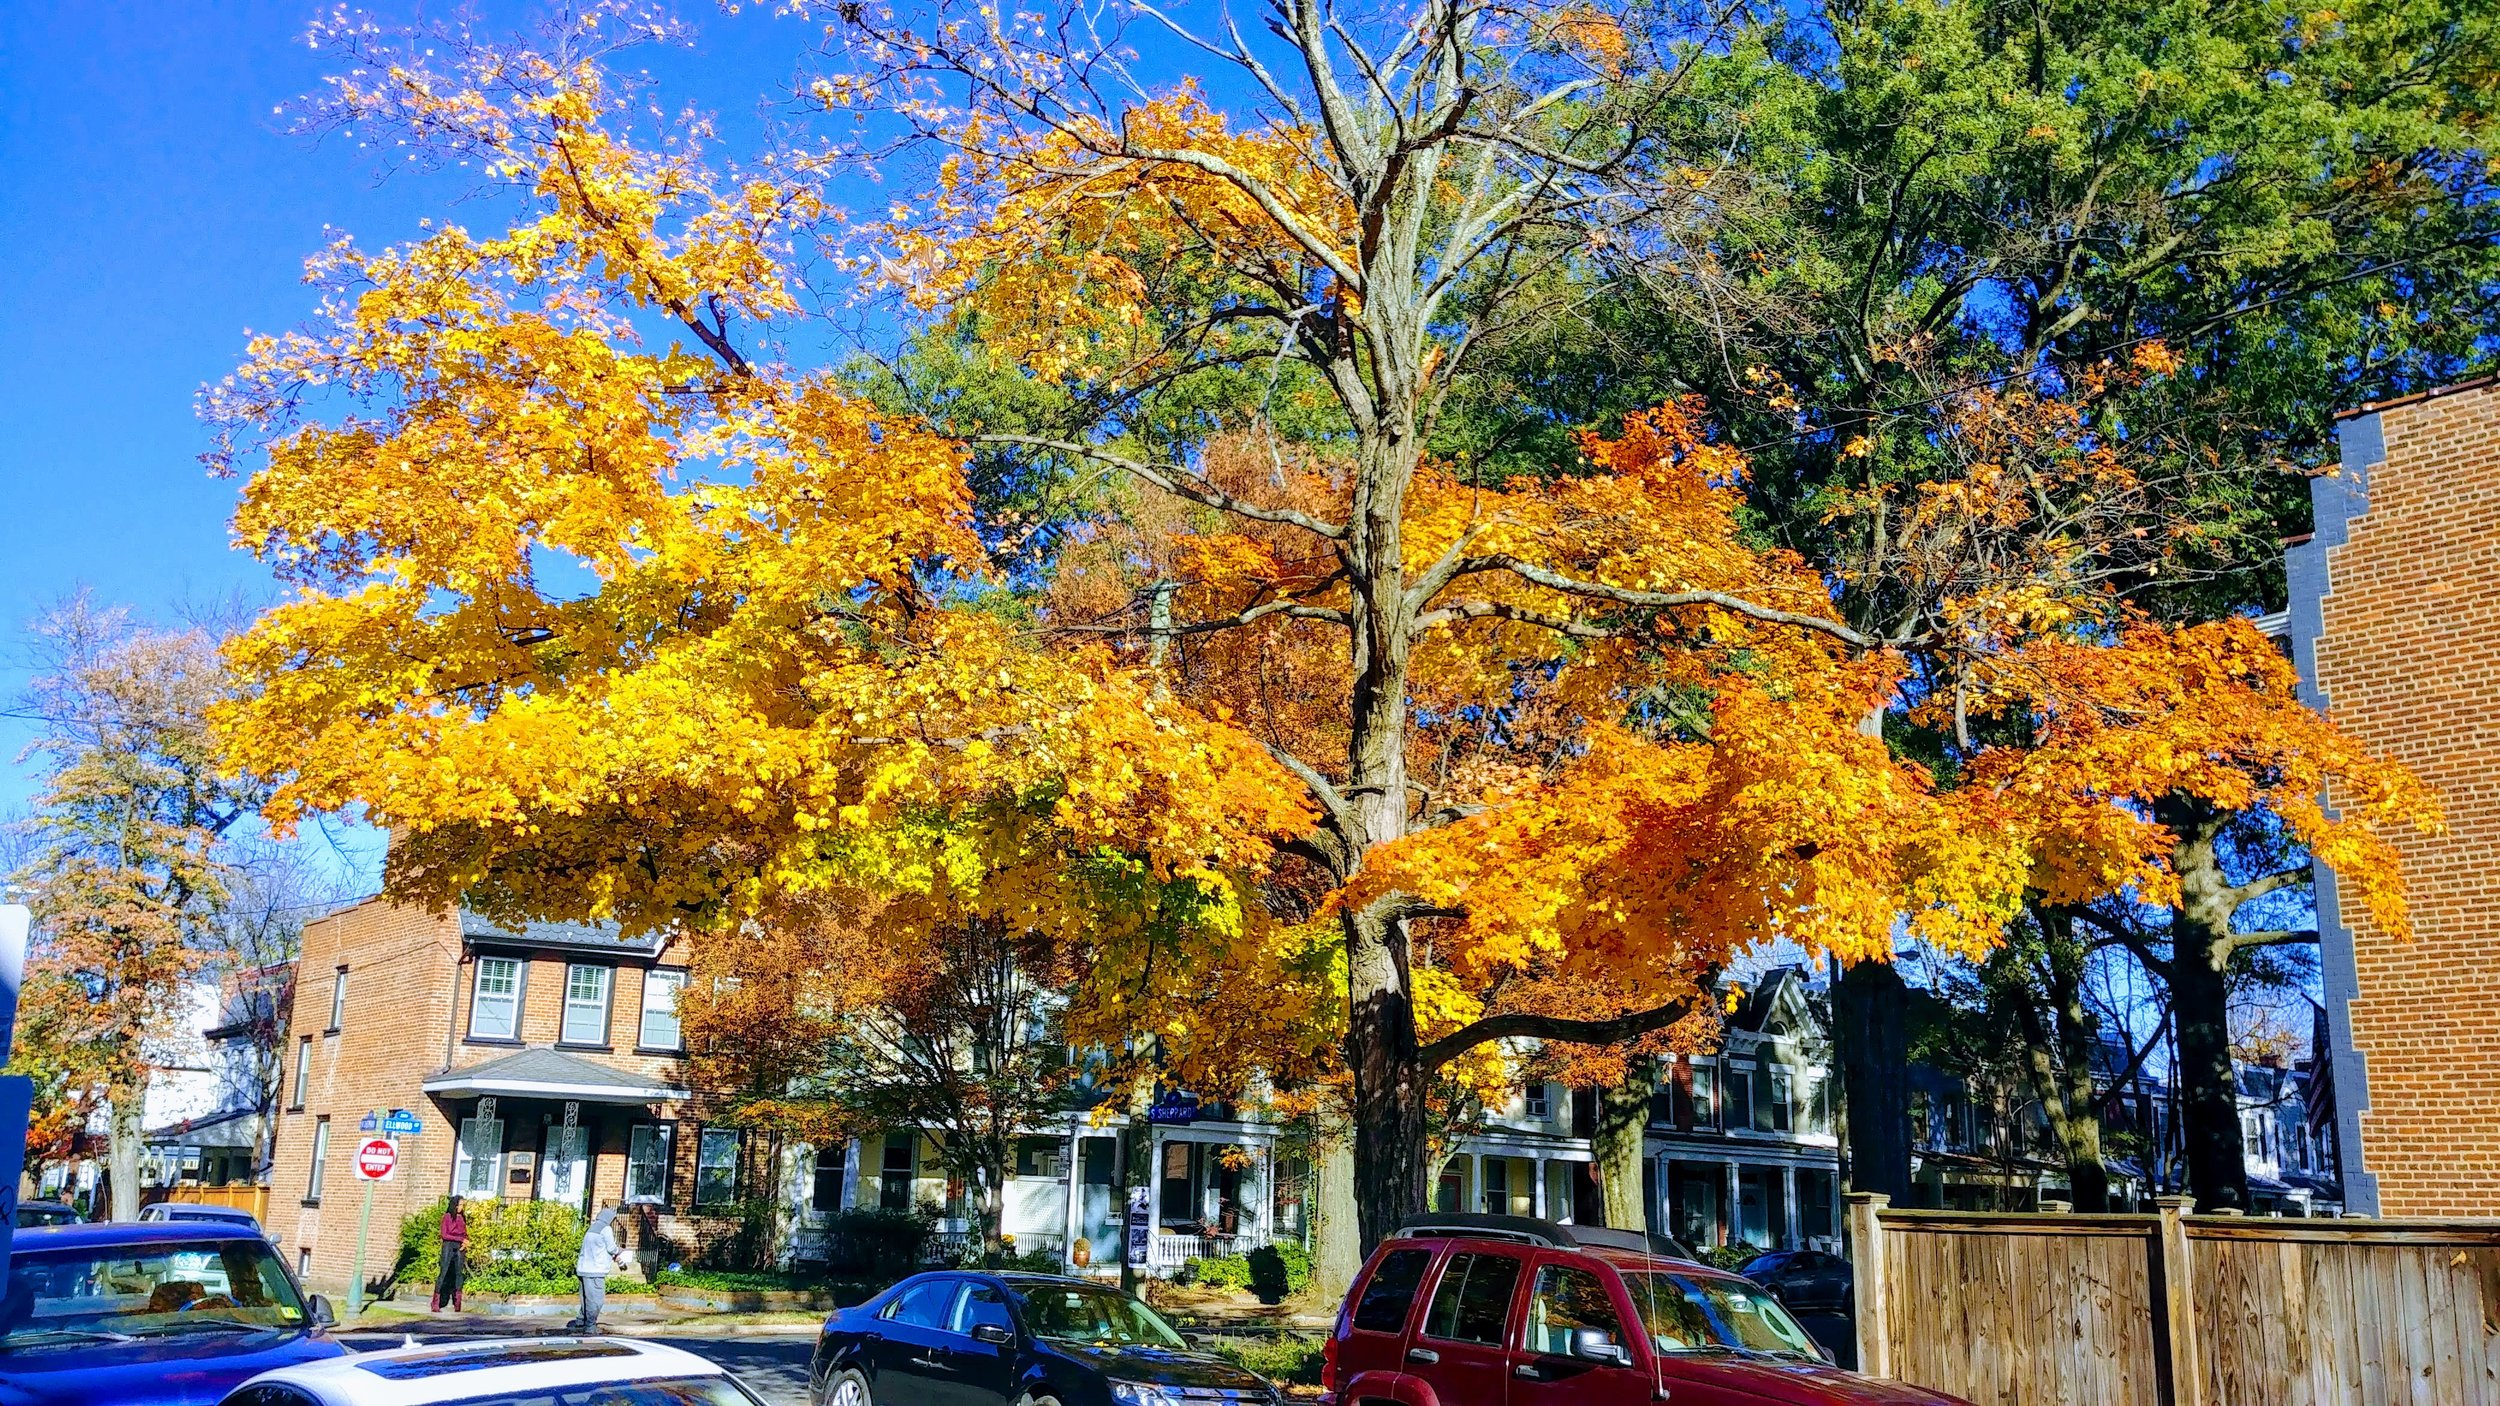 Autumn color in downtown Richmond, Virginia.